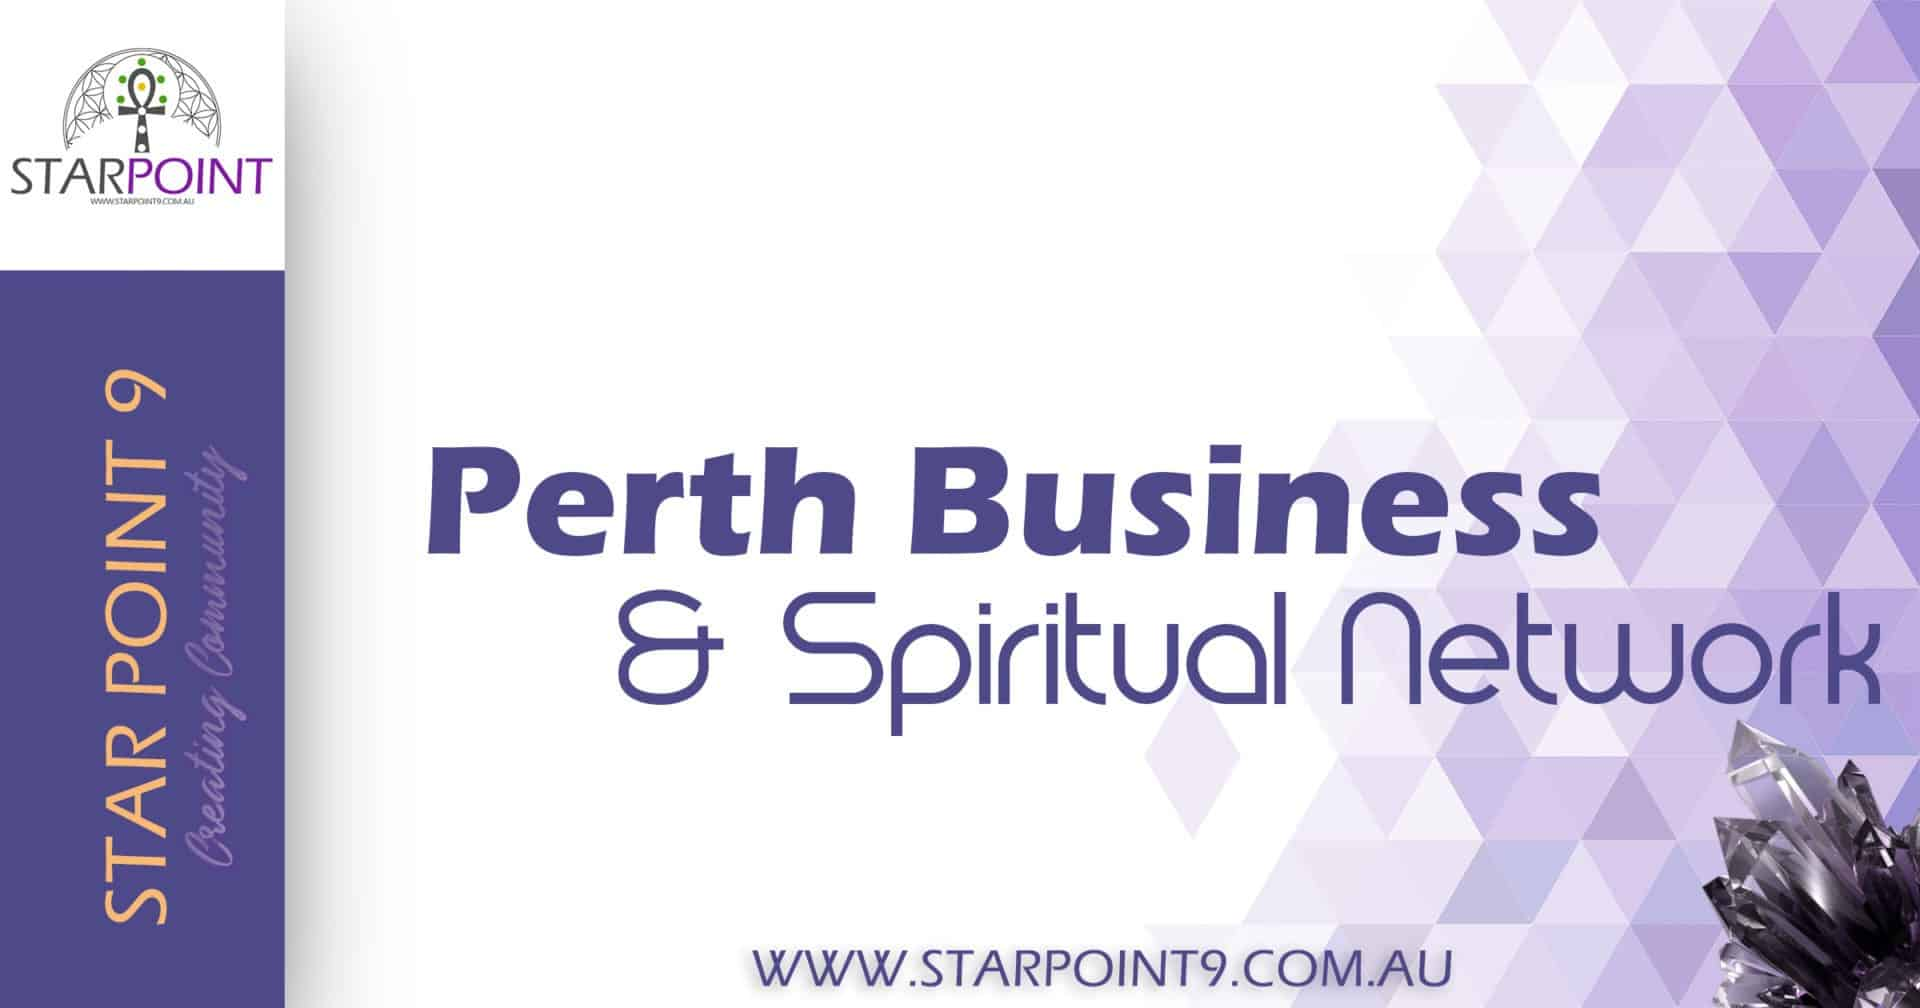 Perth Business & Spiritual Networking